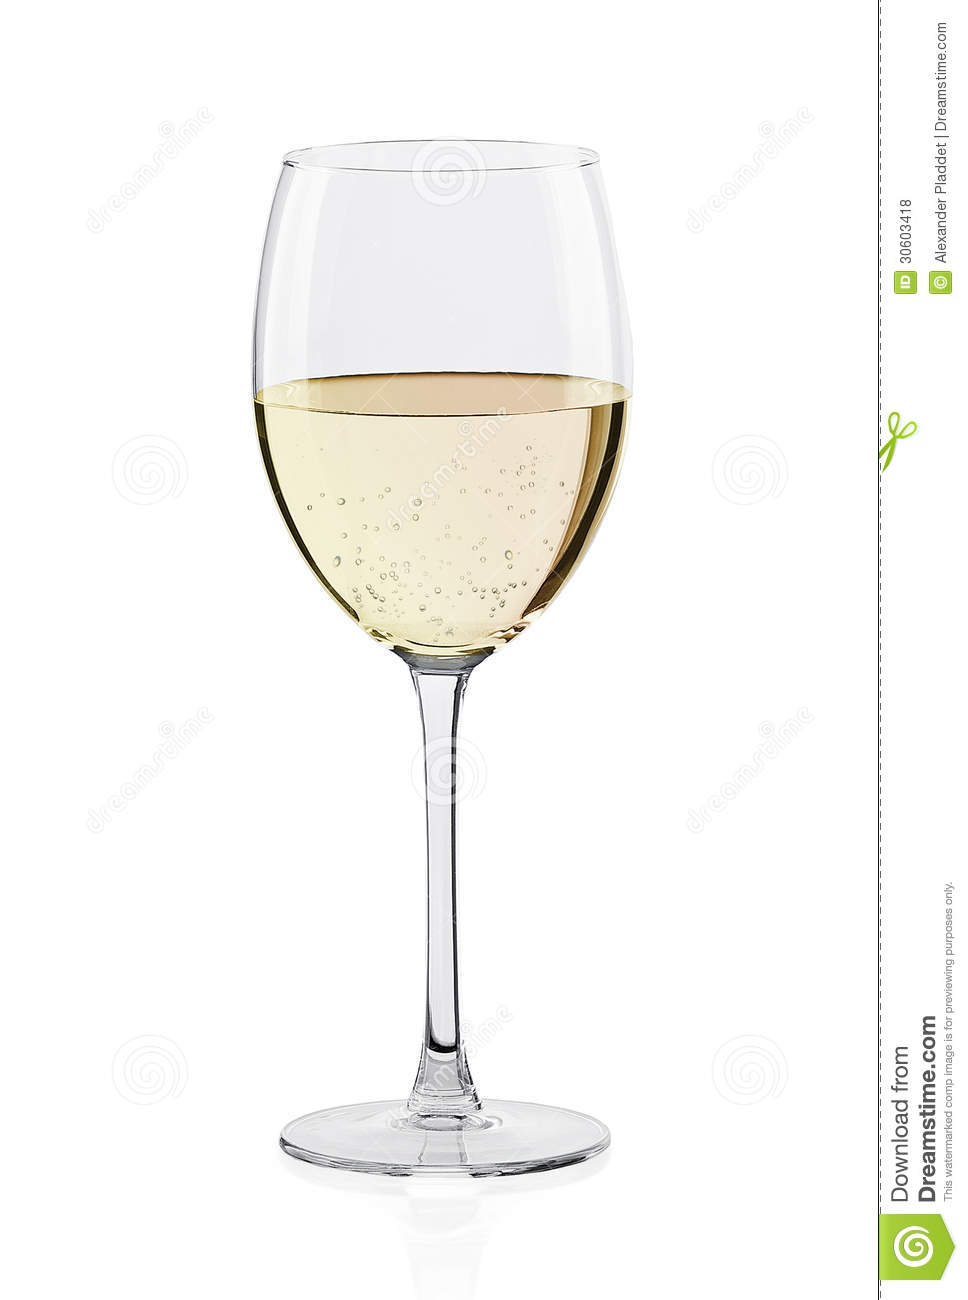 Glass of white wine stock photo image of liquid event for Cocktail 0 base de vin blanc